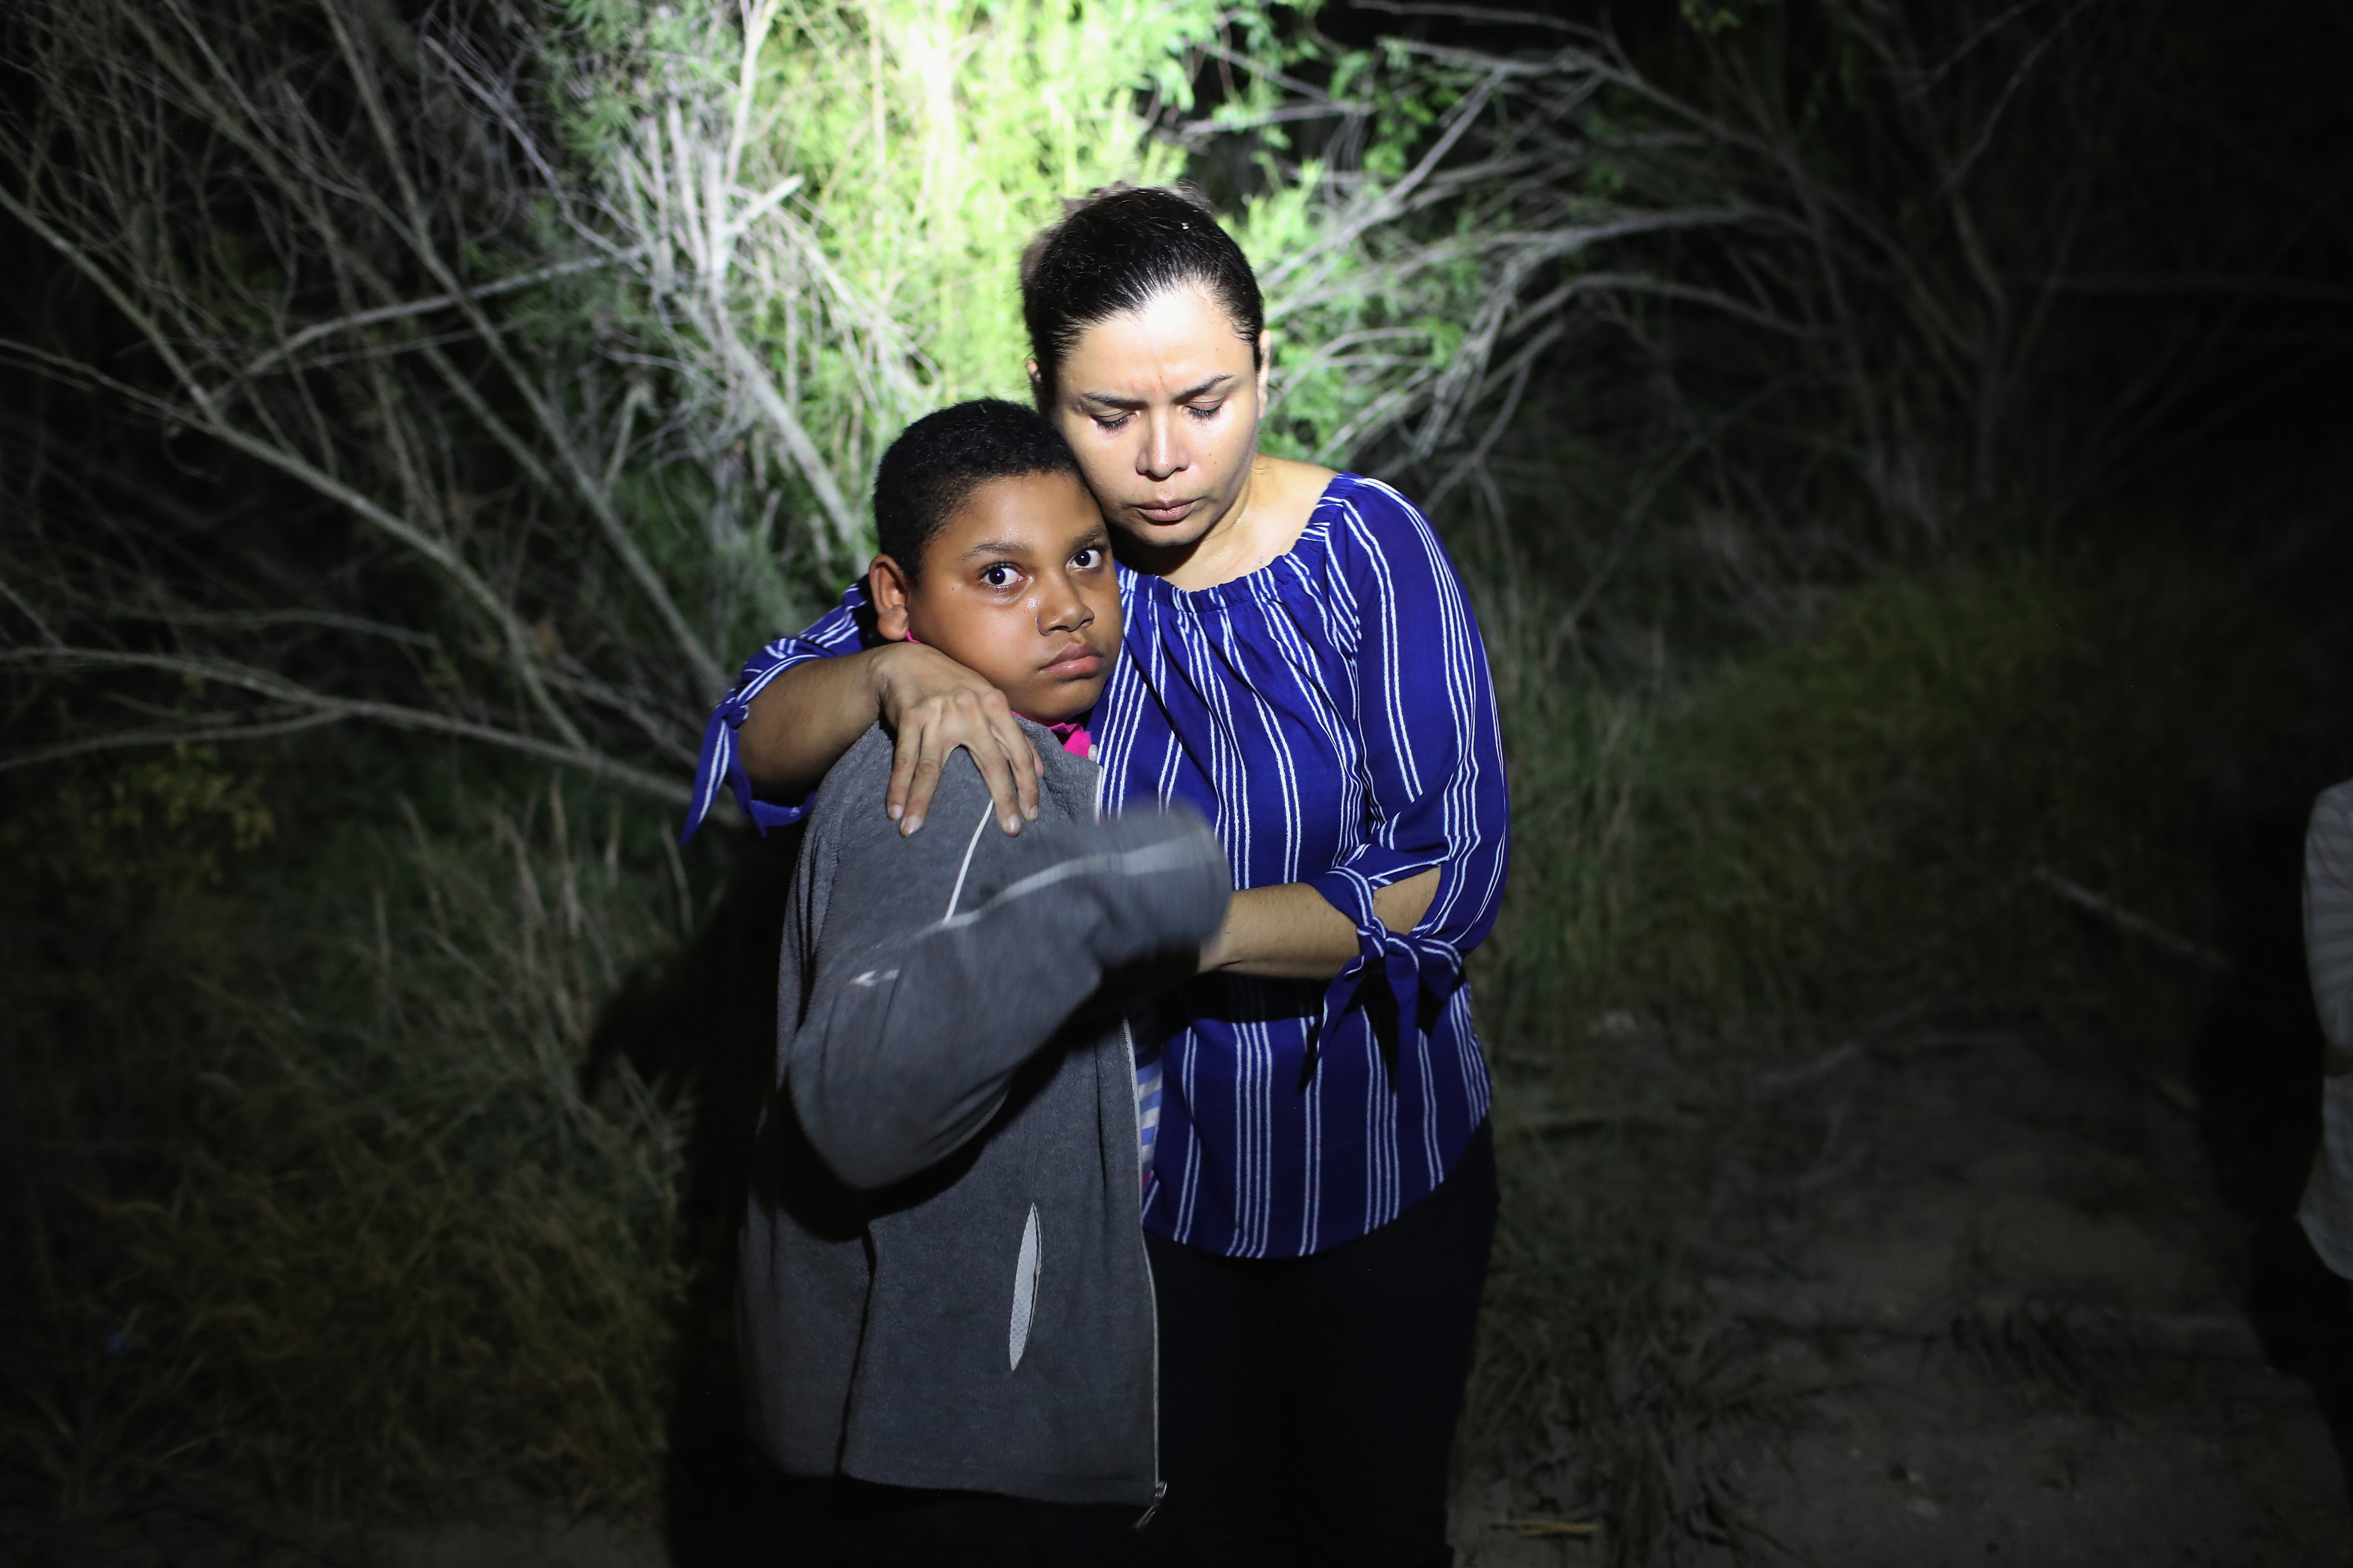 A U.S. Border Patrol spotlight shines on a terrified mother and son from Honduras as they are found in the dark near the U.S.-Mexico border in McAllen, Texas on June 12, 2018.